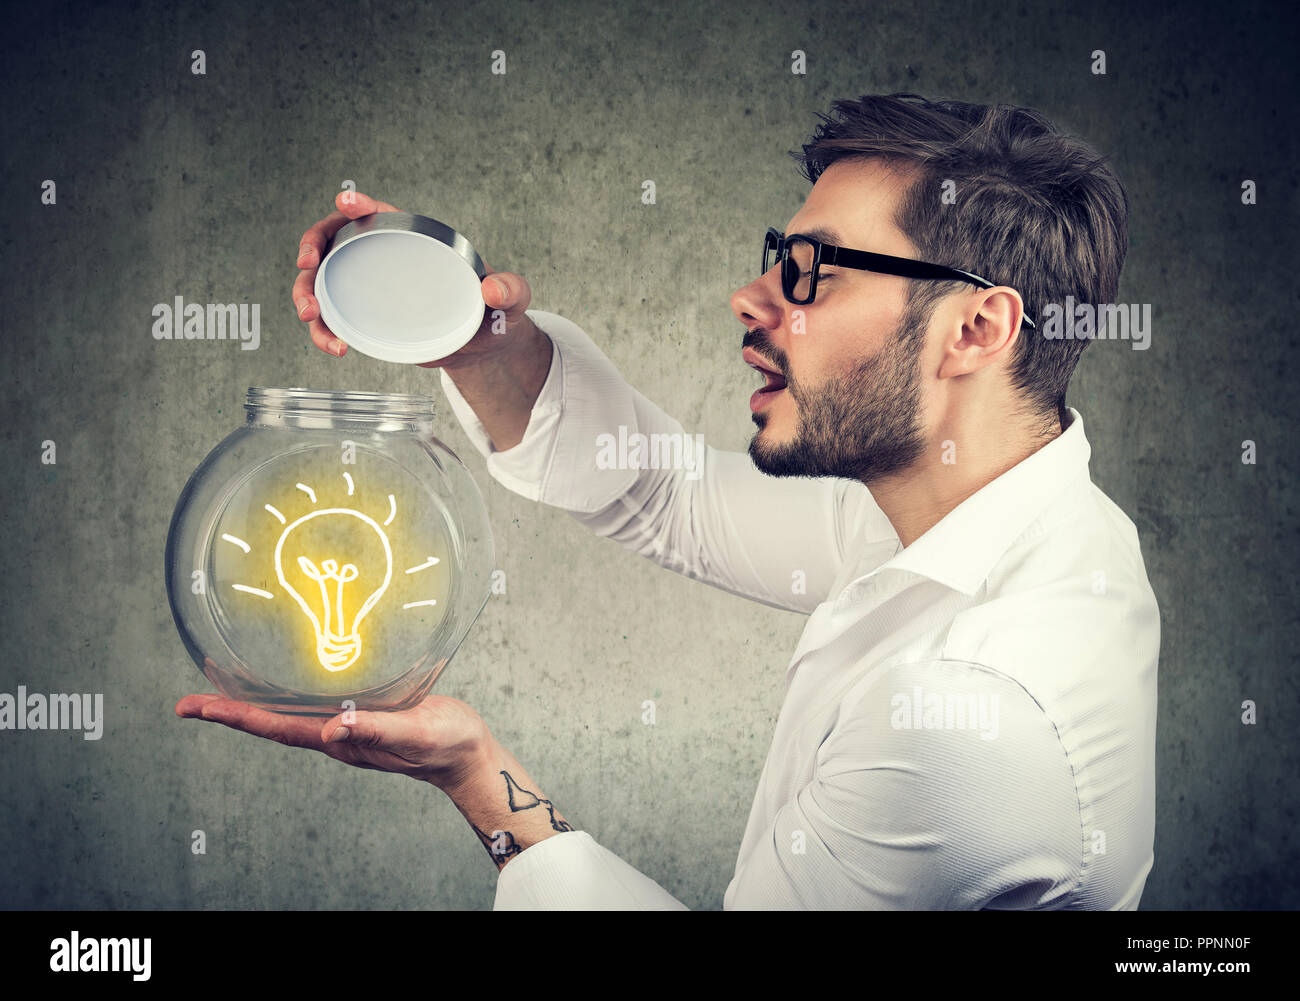 Excited man holding opening a glass jar with bright idea lighbulb inside being creative - Stock Image